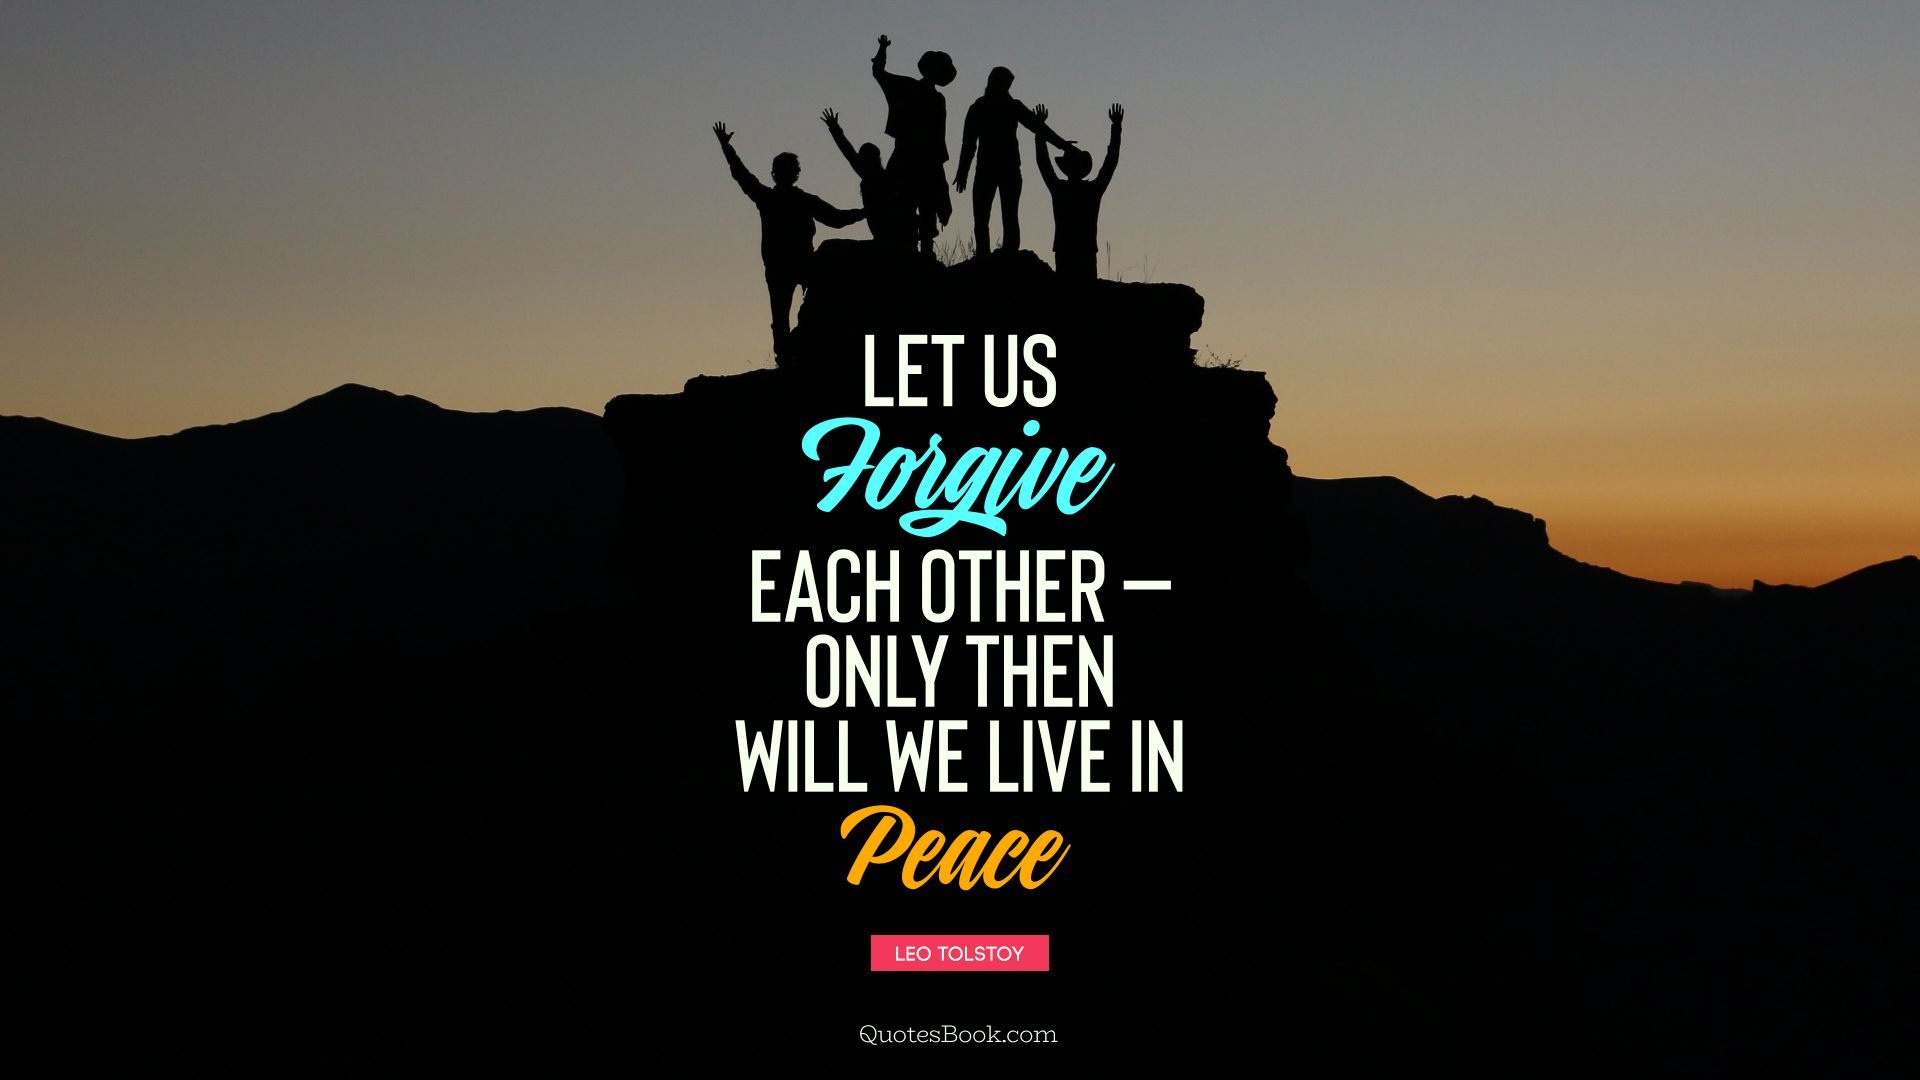 Let us forgive each other - only then can we live in peace. - Quote by Leo Tolstoy